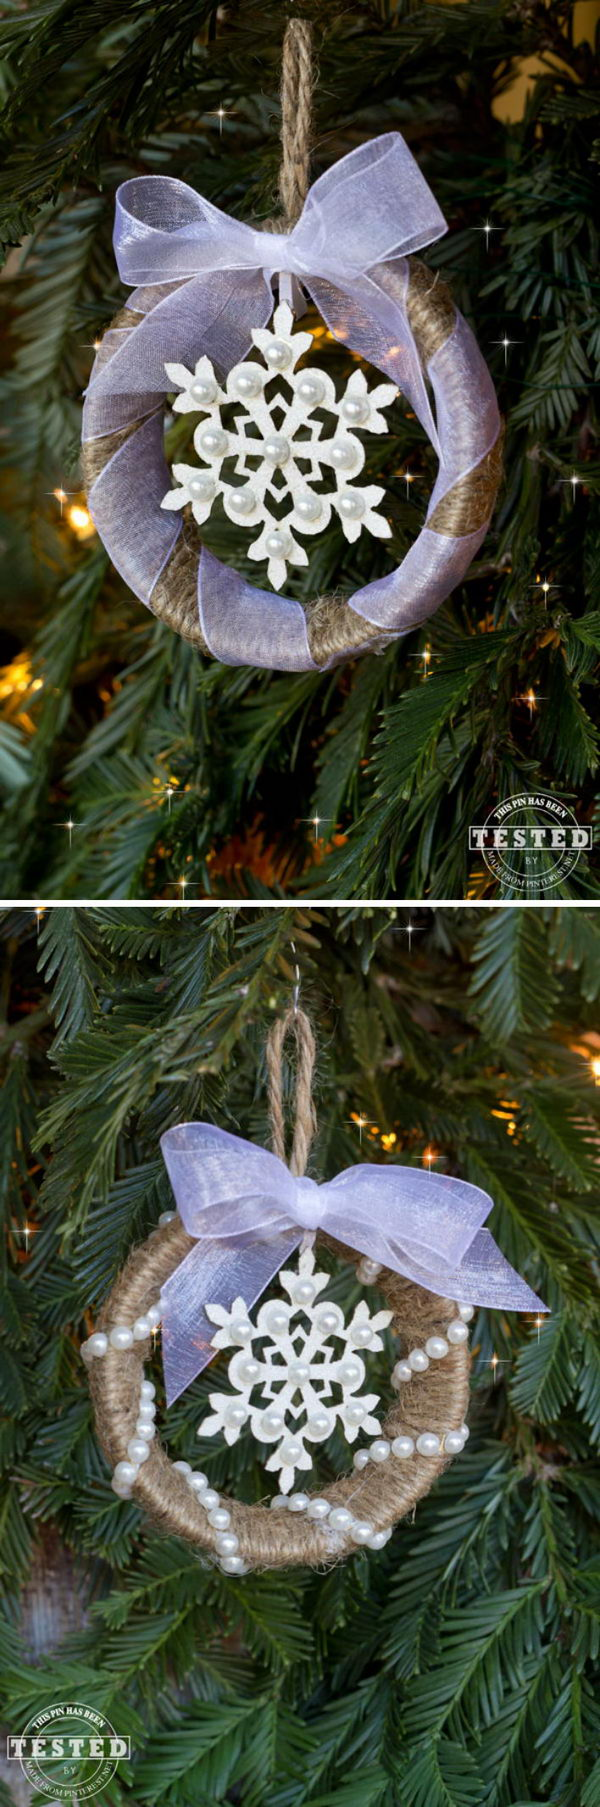 30 Simple And Festive Mason Jar Lid Ornaments For Christmas